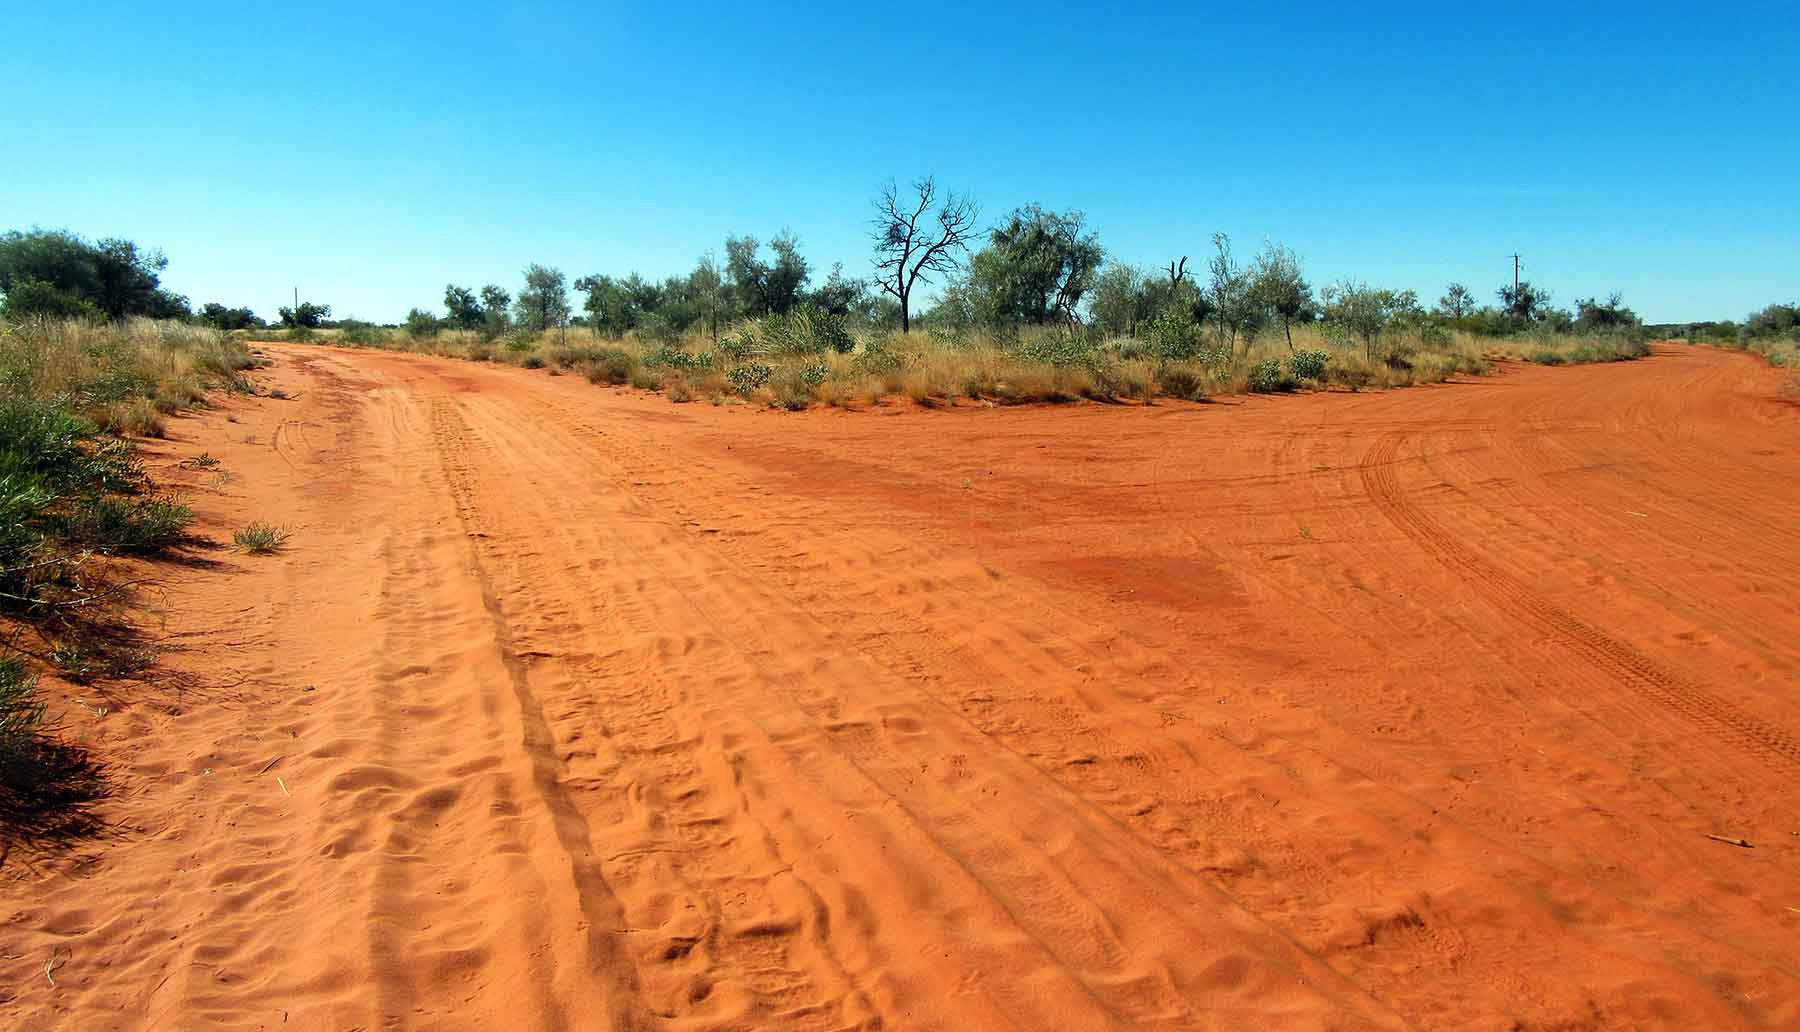 Red dirt road junction at Utopia in Central Australia. Photo by Utopia Lane Gallery